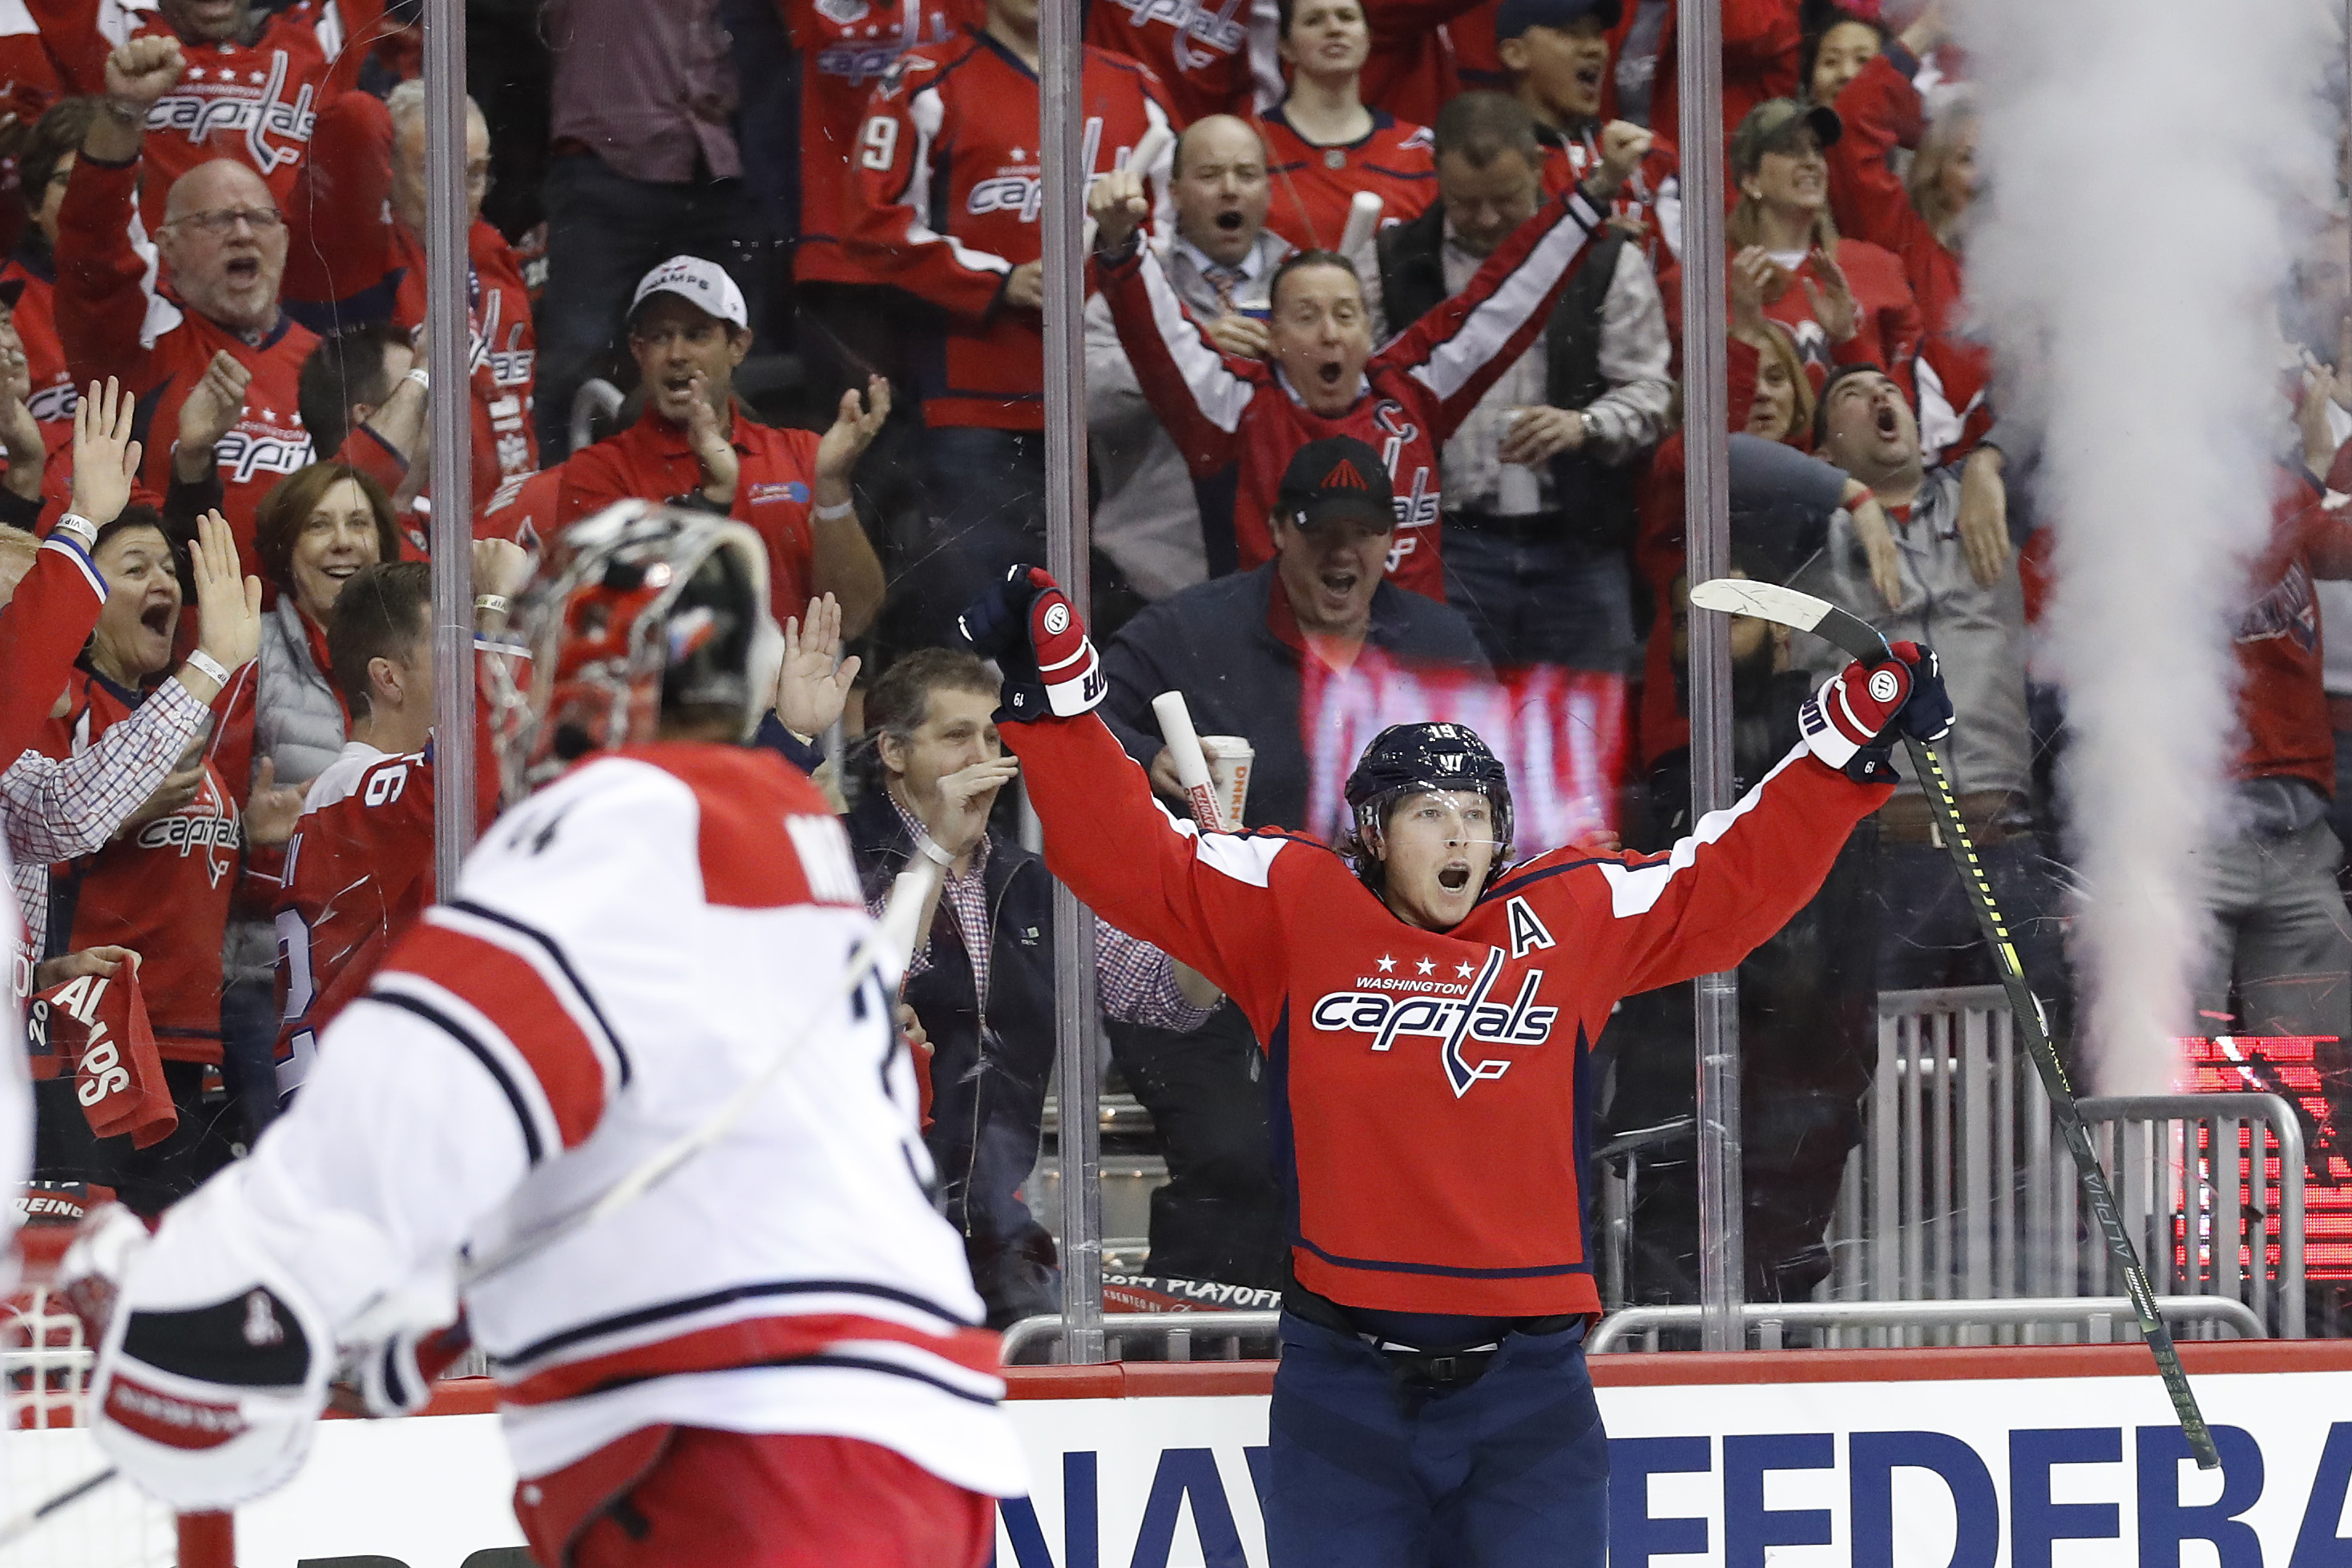 Apr 11, 2019; Washington, DC, USA; Washington Capitals center Nicklas Backstrom (19) celebrates after scoring a goal against the Carolina Hurricanes in the first period in game one of the first round of the 2019 Stanley Cup Playoffs at Capital One Arena. Geoff Burke-USA TODAY Sports